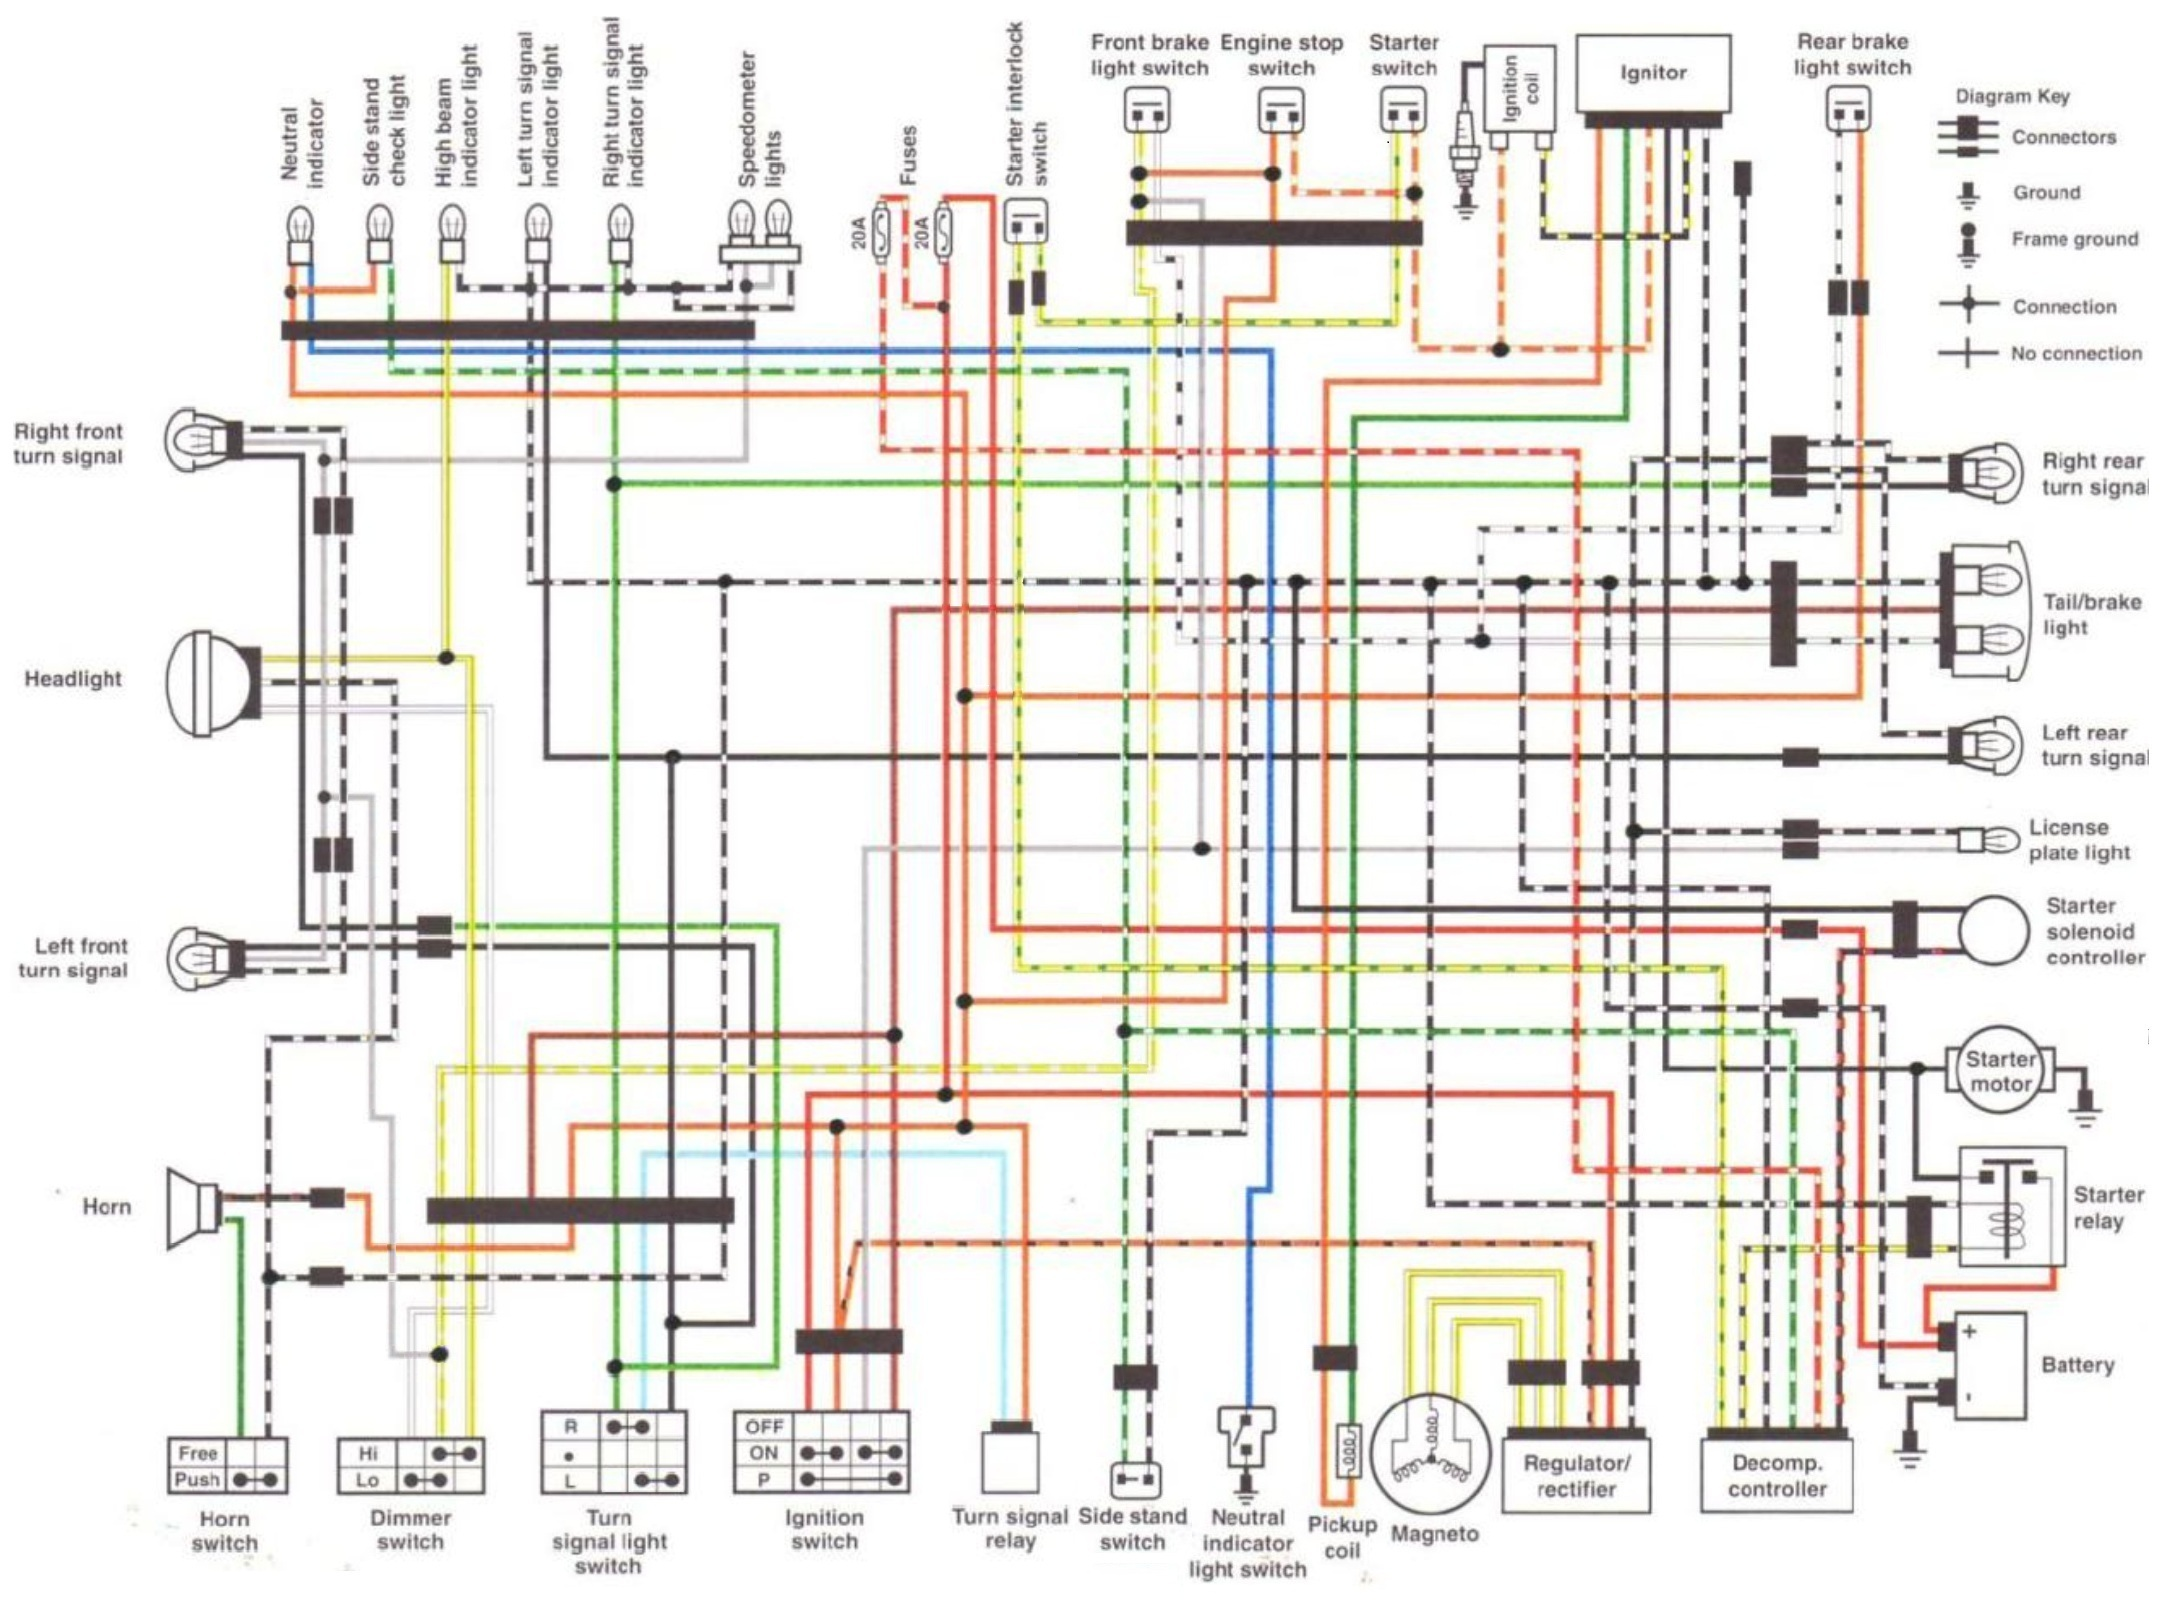 Suzuki Ls650 Wiring Diagram Detailed Diagrams Gs700 Suzukisavage Com Clymers In One Image Yamaha Xs650